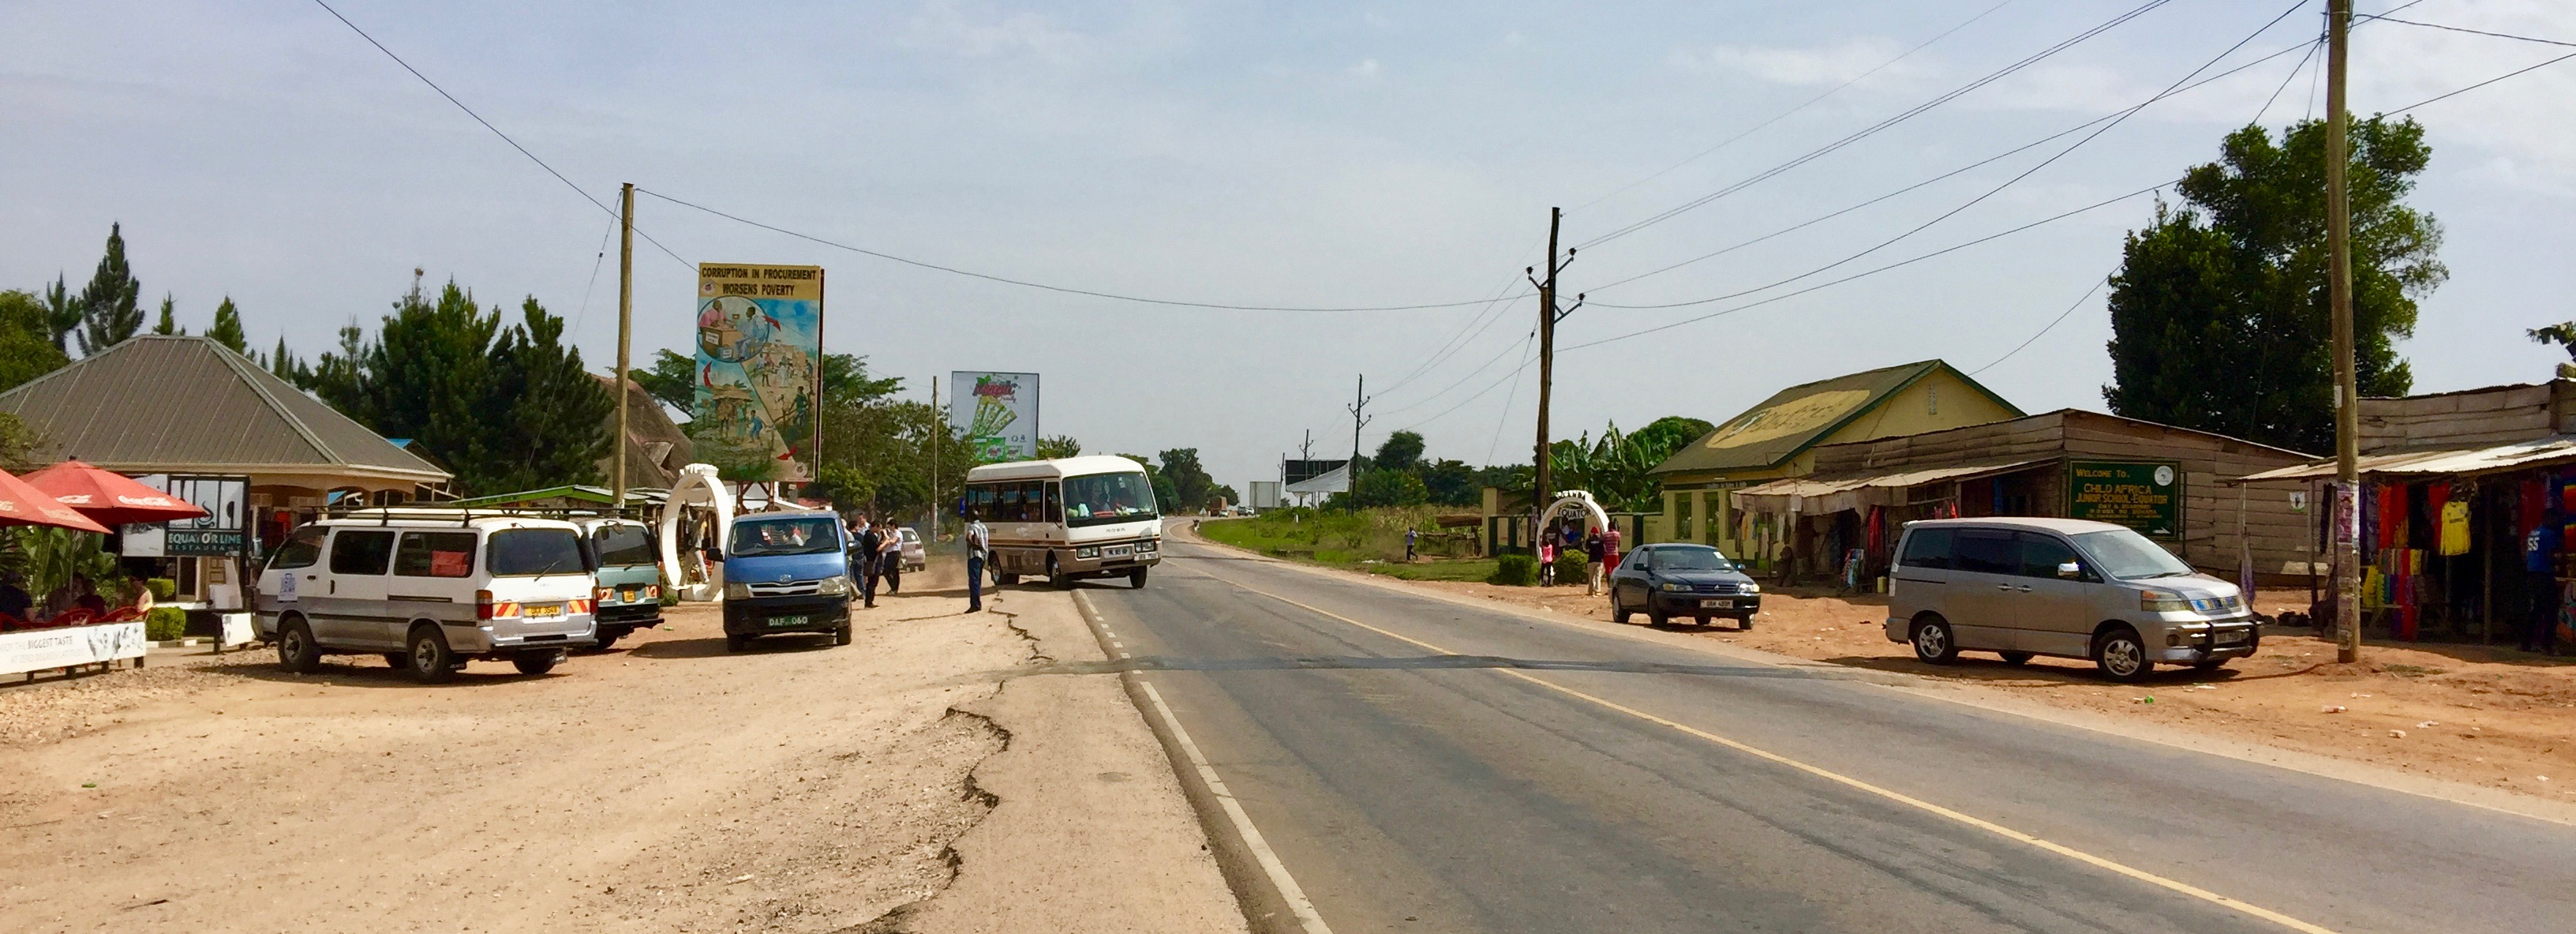 Memories of a beautiful Equator on Kampala-Masaka Highway